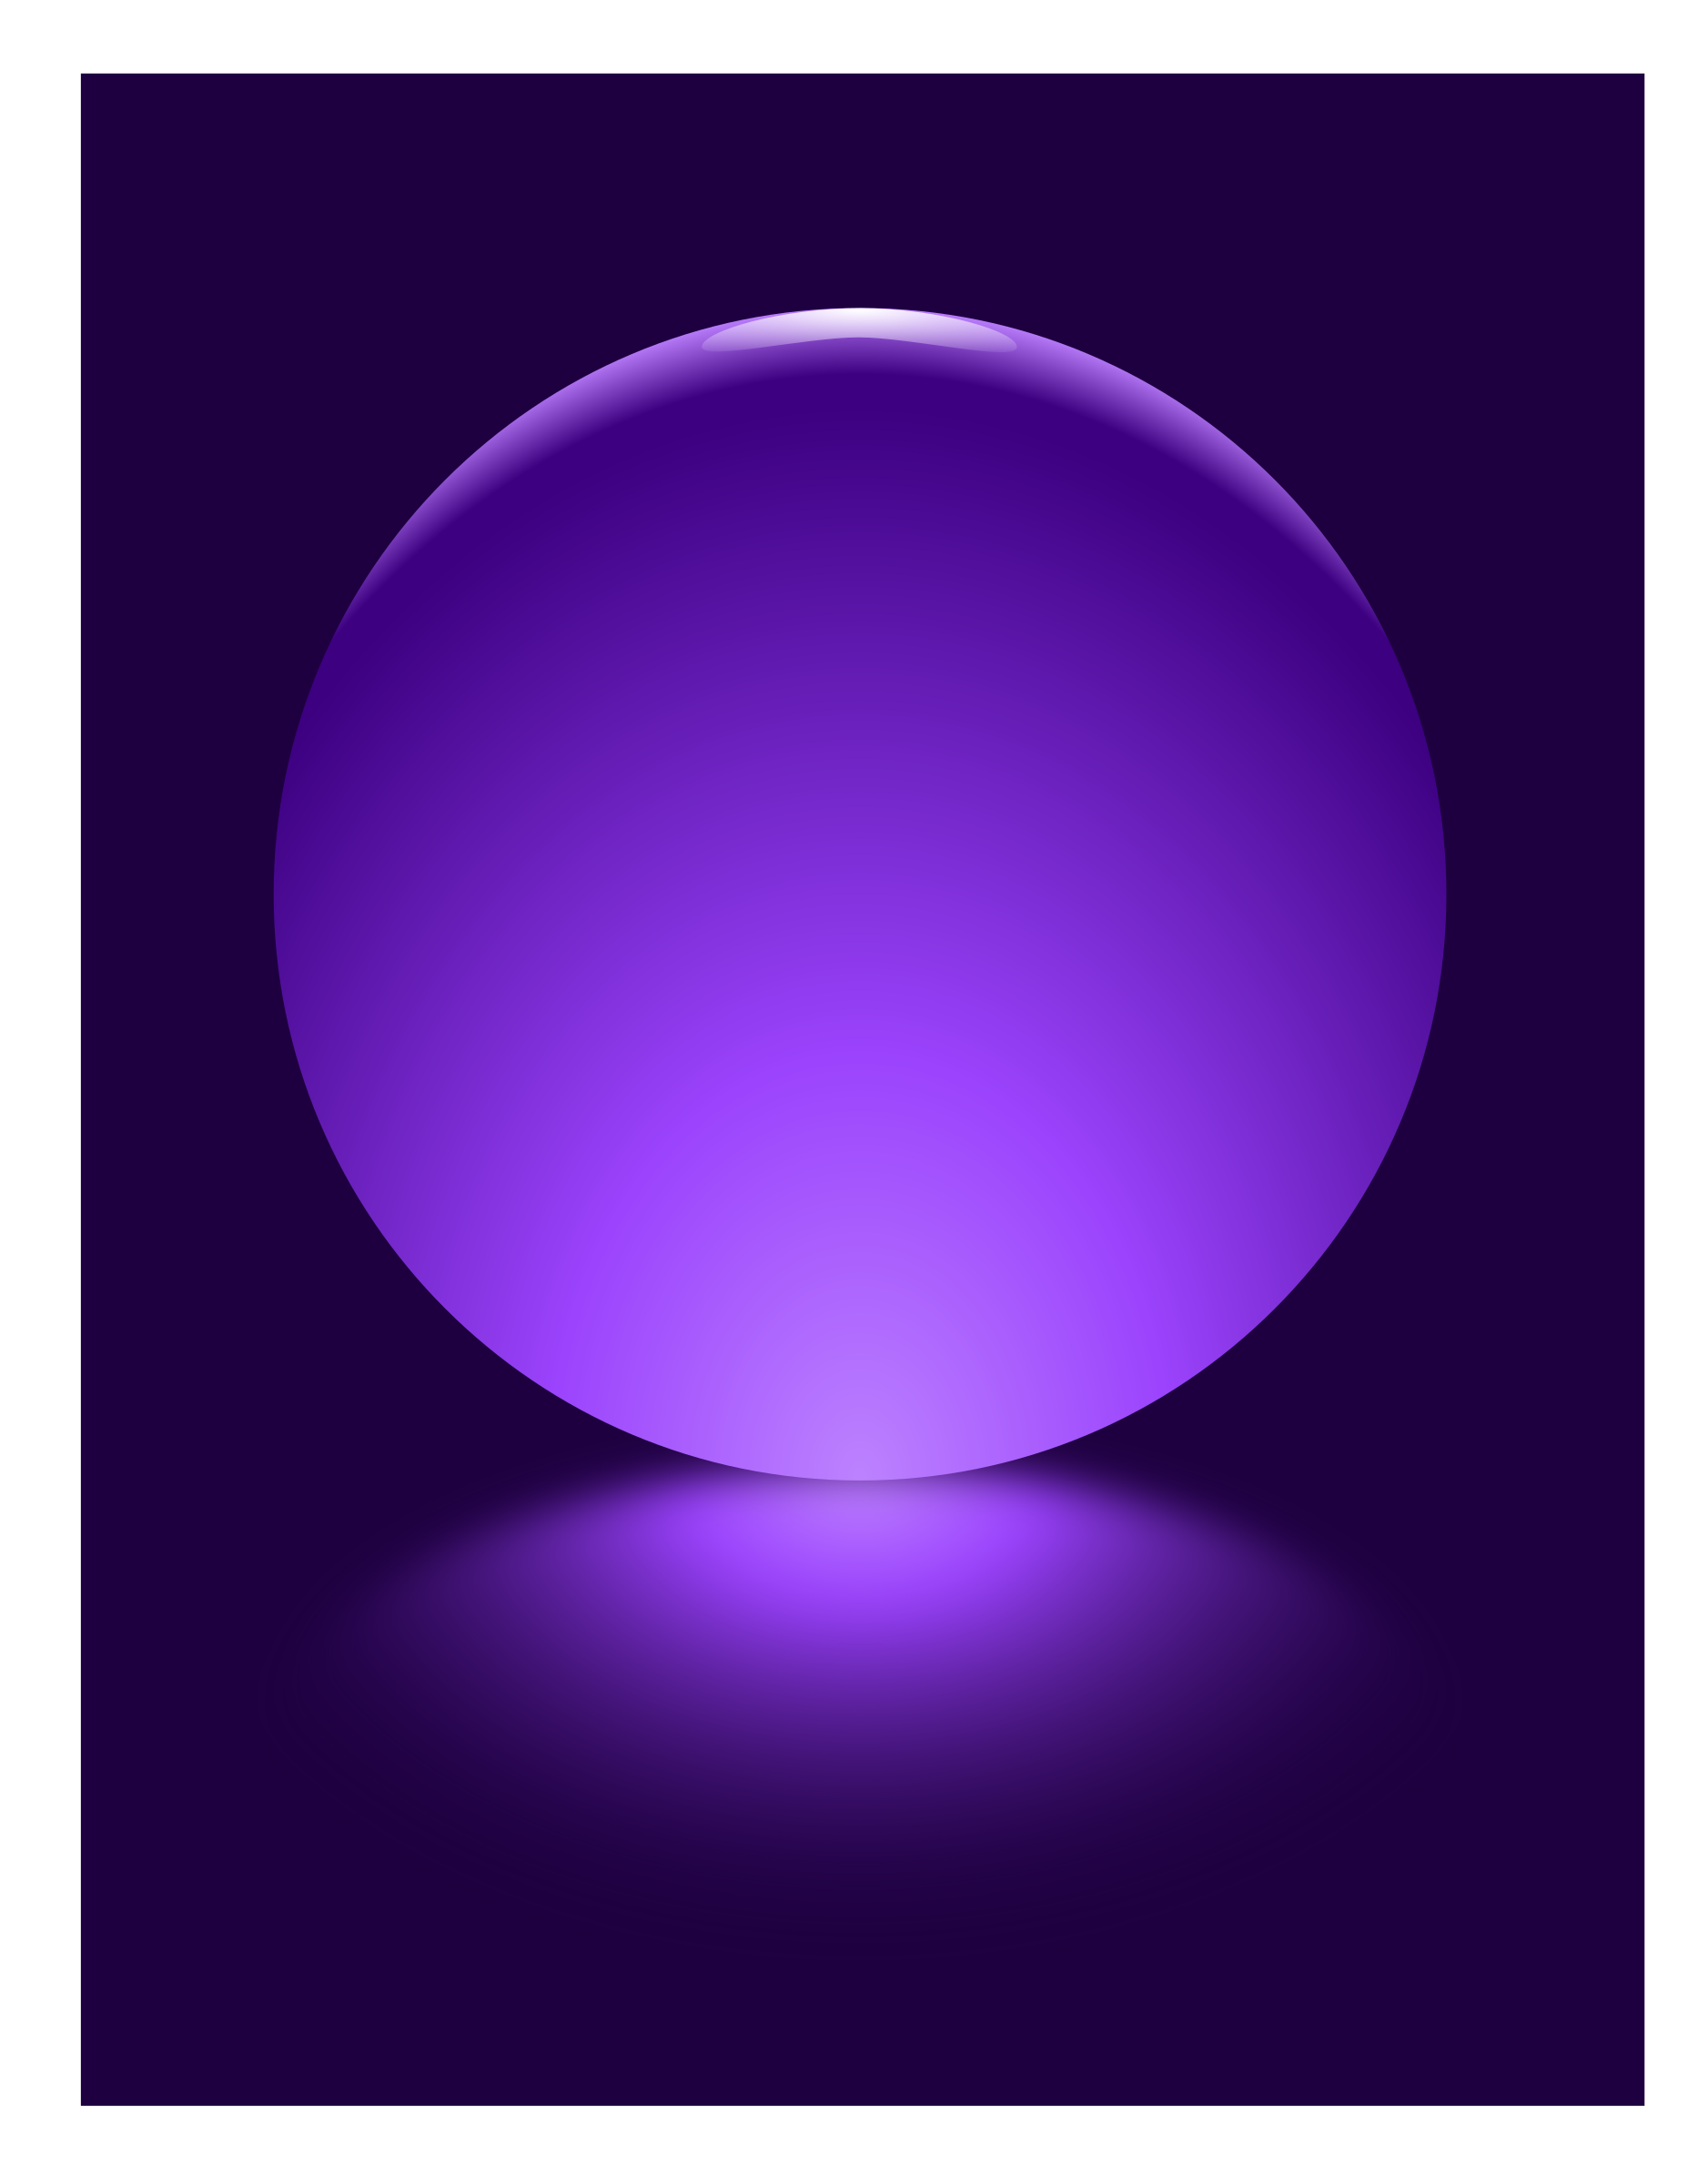 Purple Sphere Blurred Reflection by djpaul